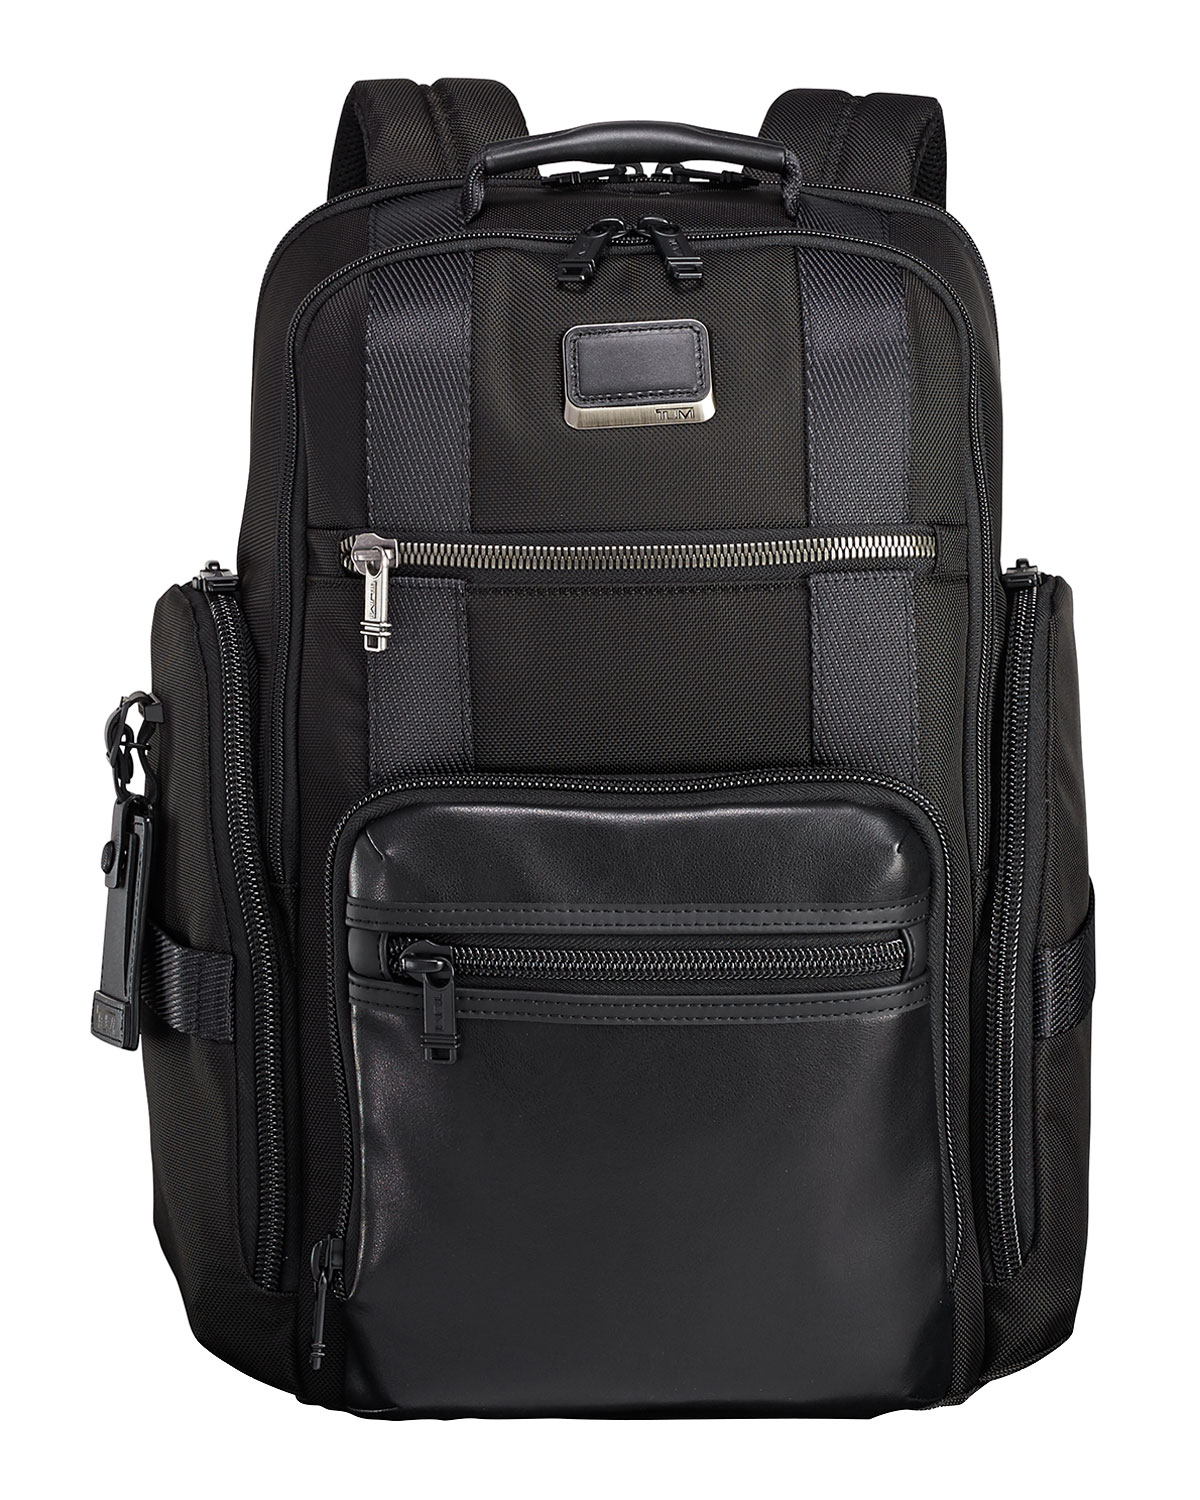 Sheppard Deluxe Backpack